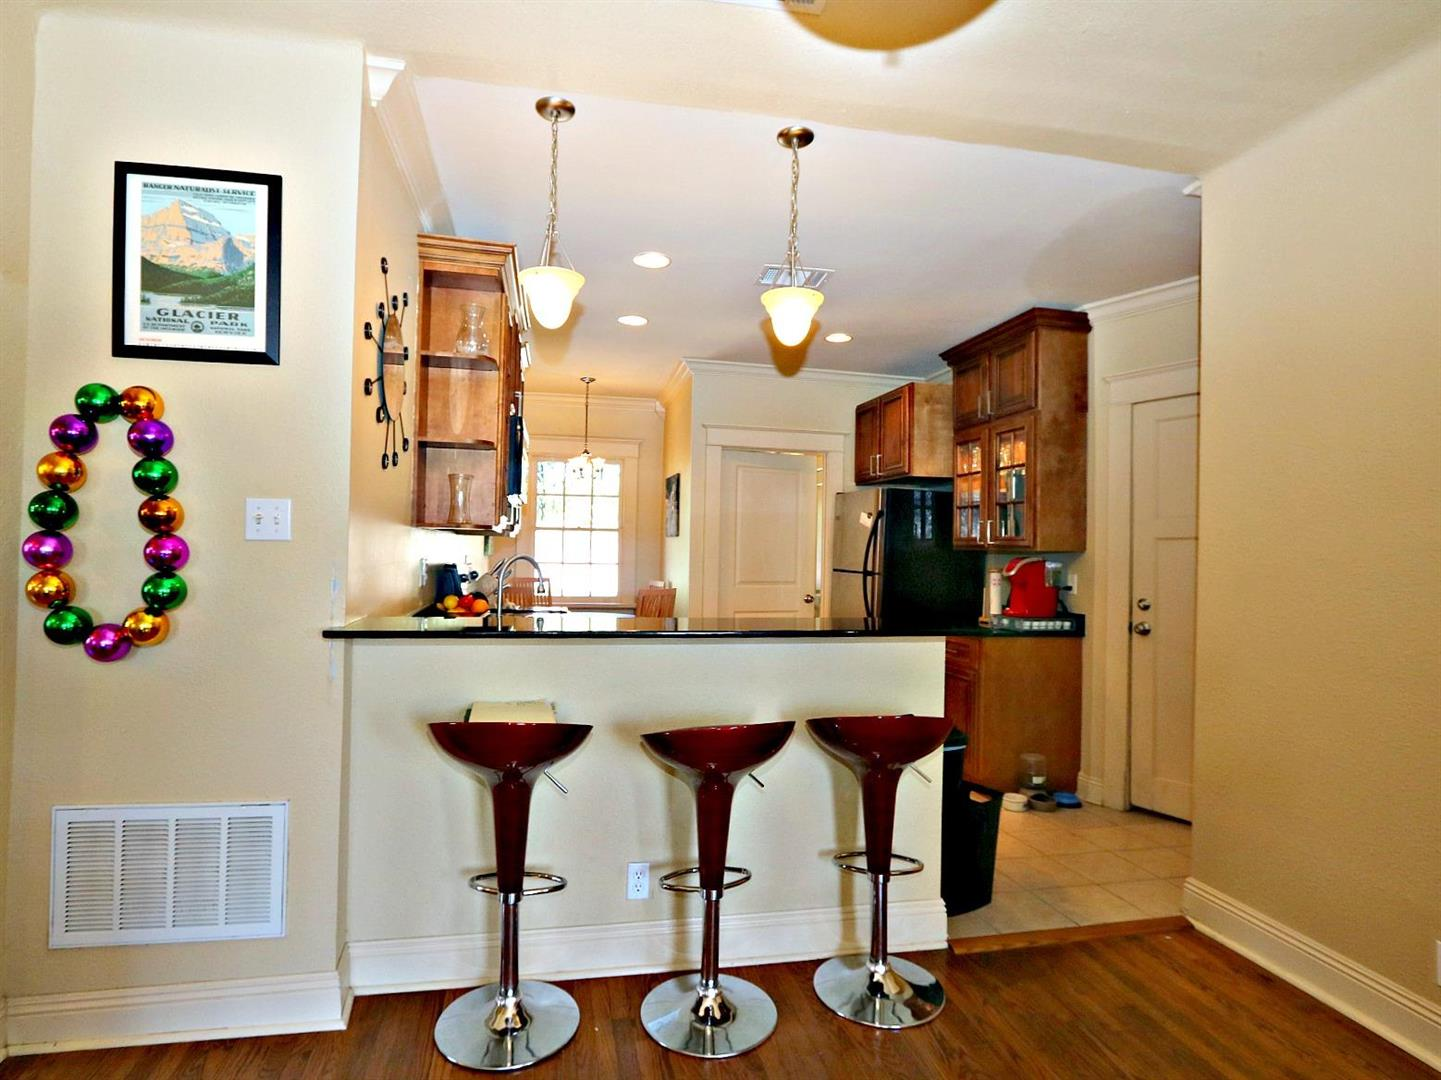 3322UpperlineCondo,DentoKitchen.jpg